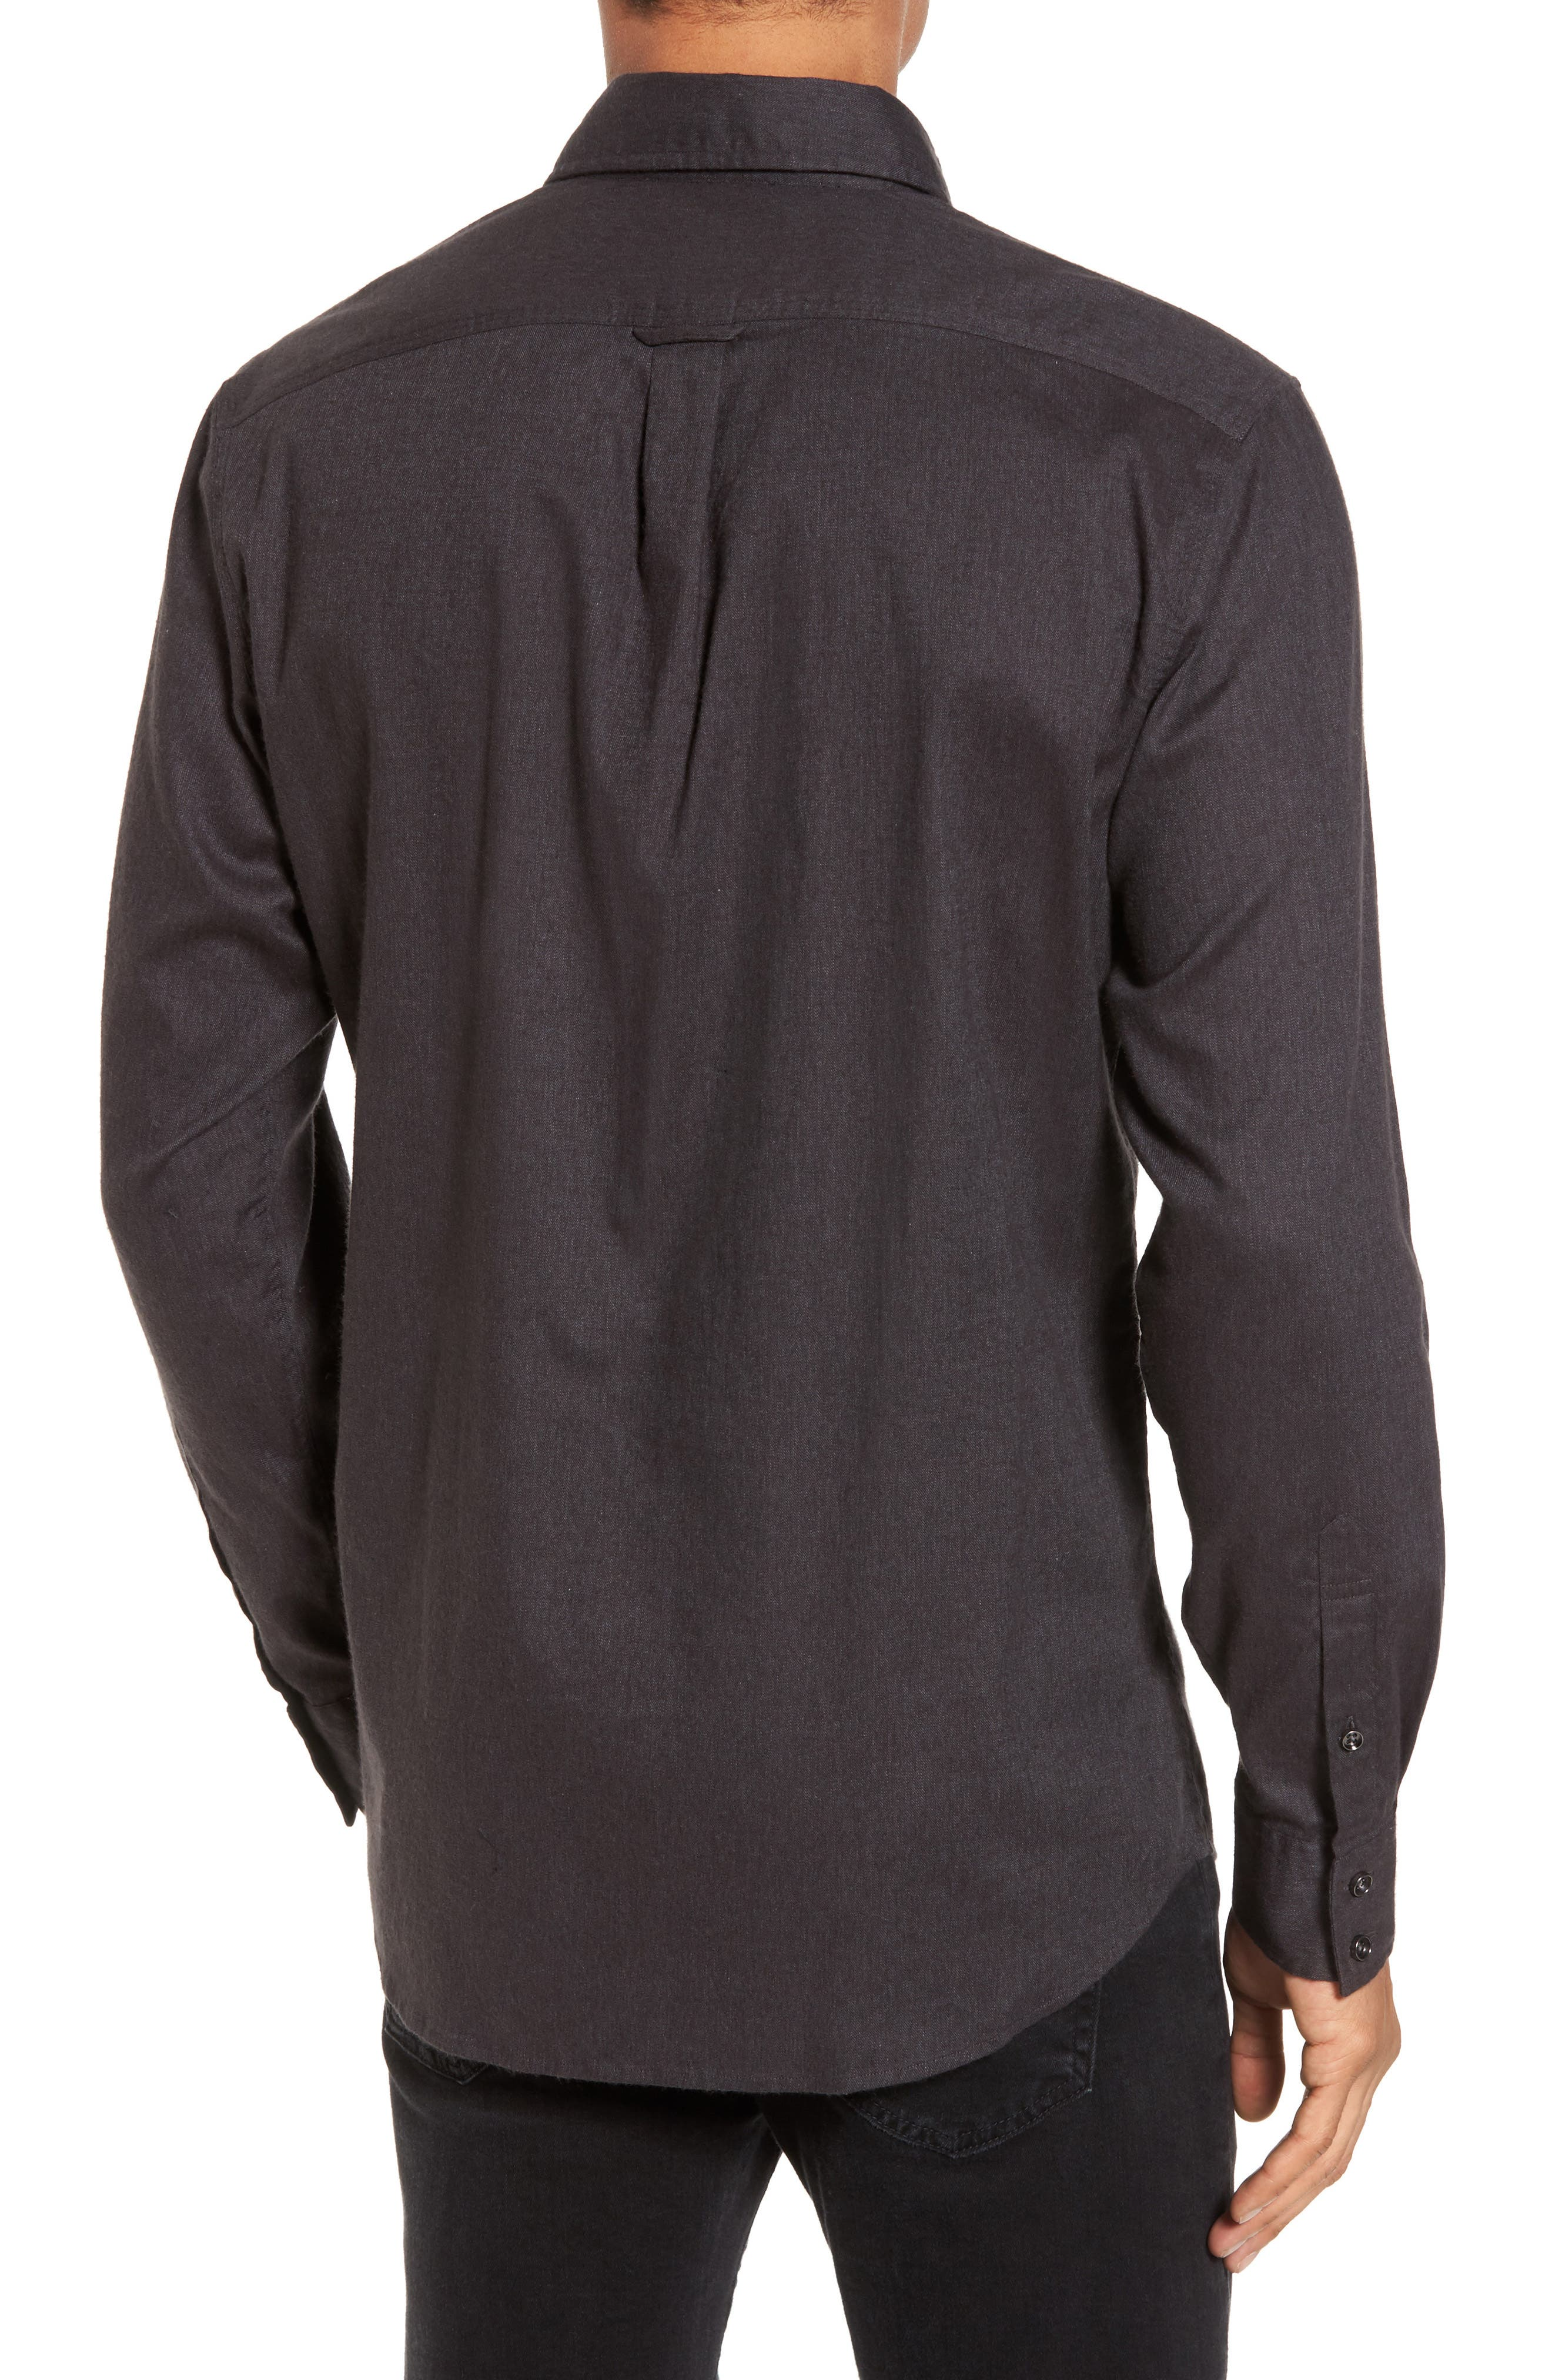 'Sinclair' Trim Fit Brushed Twill Sport Shirt,                             Alternate thumbnail 2, color,                             021